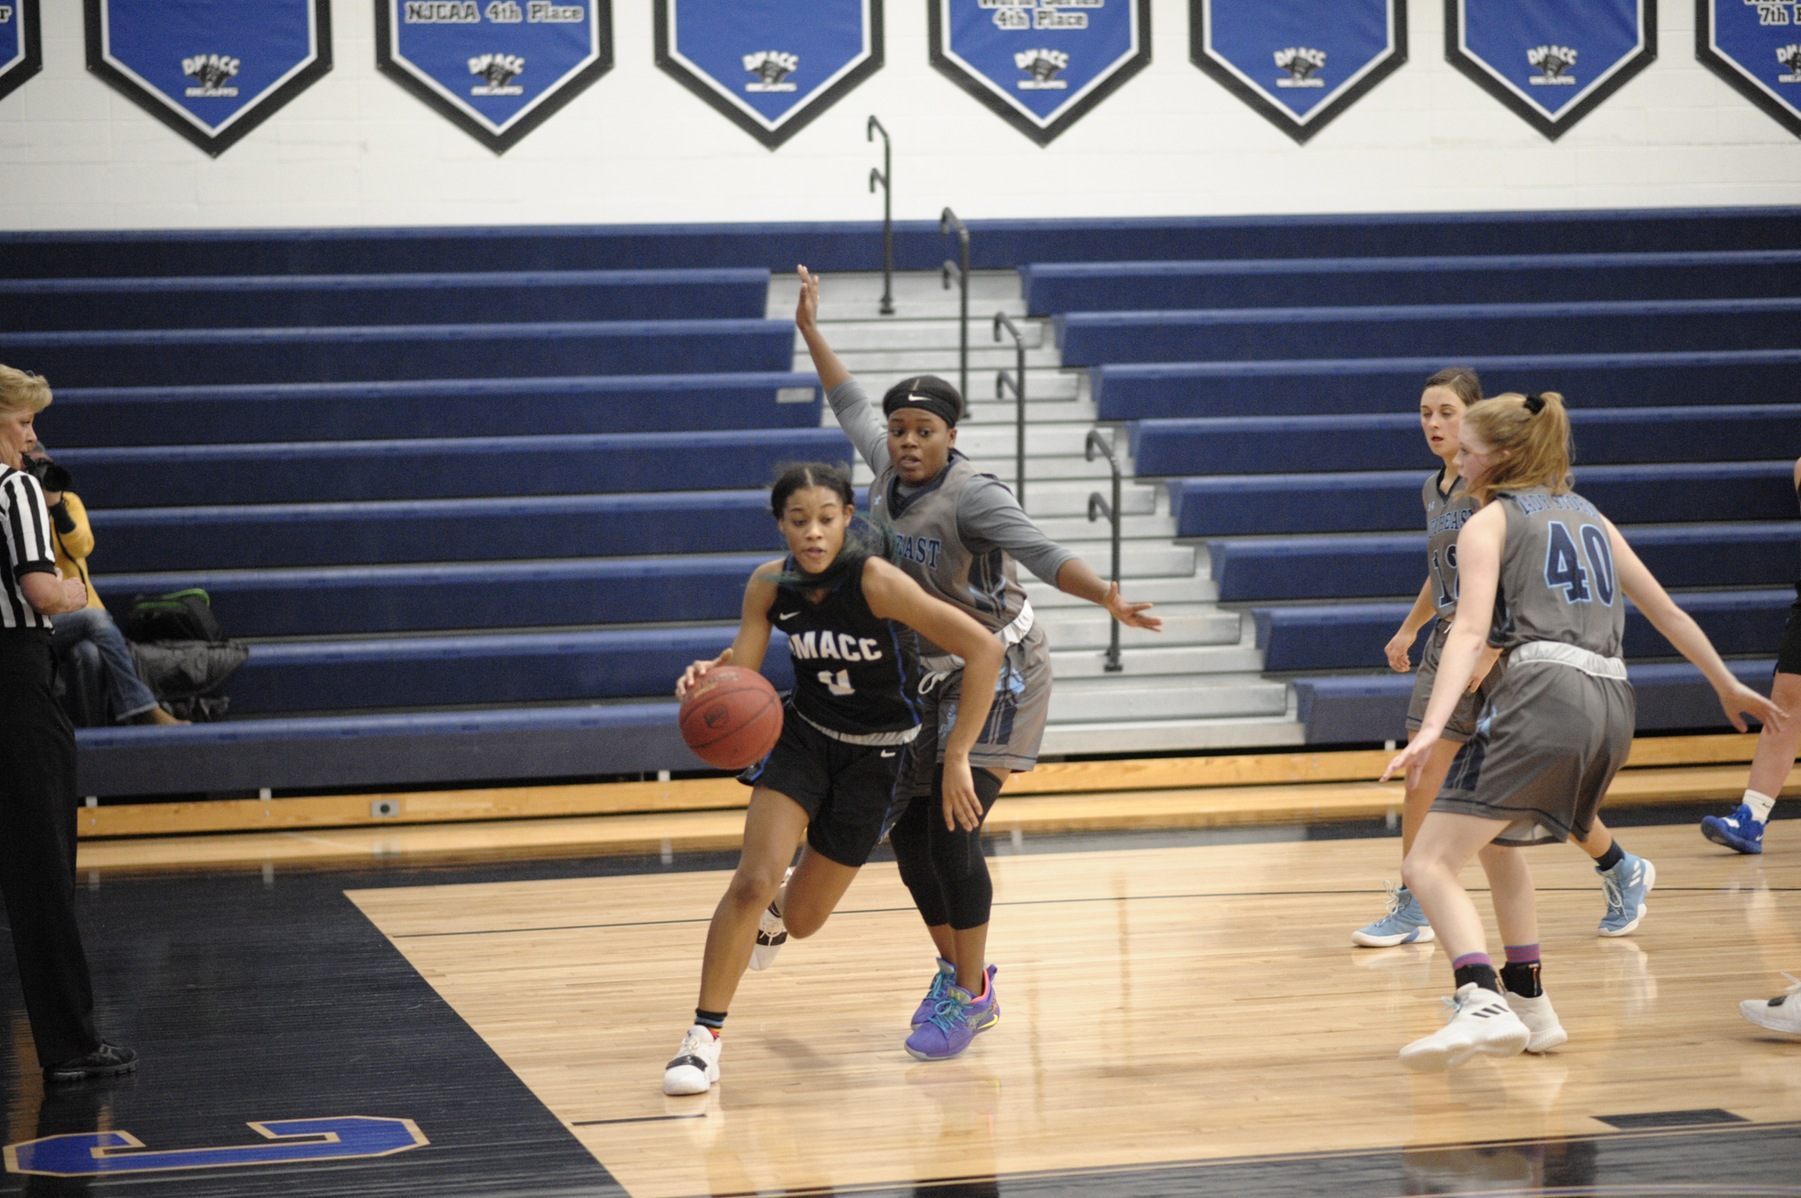 DMACC women's basketball team falls to KCKCC, 83-56